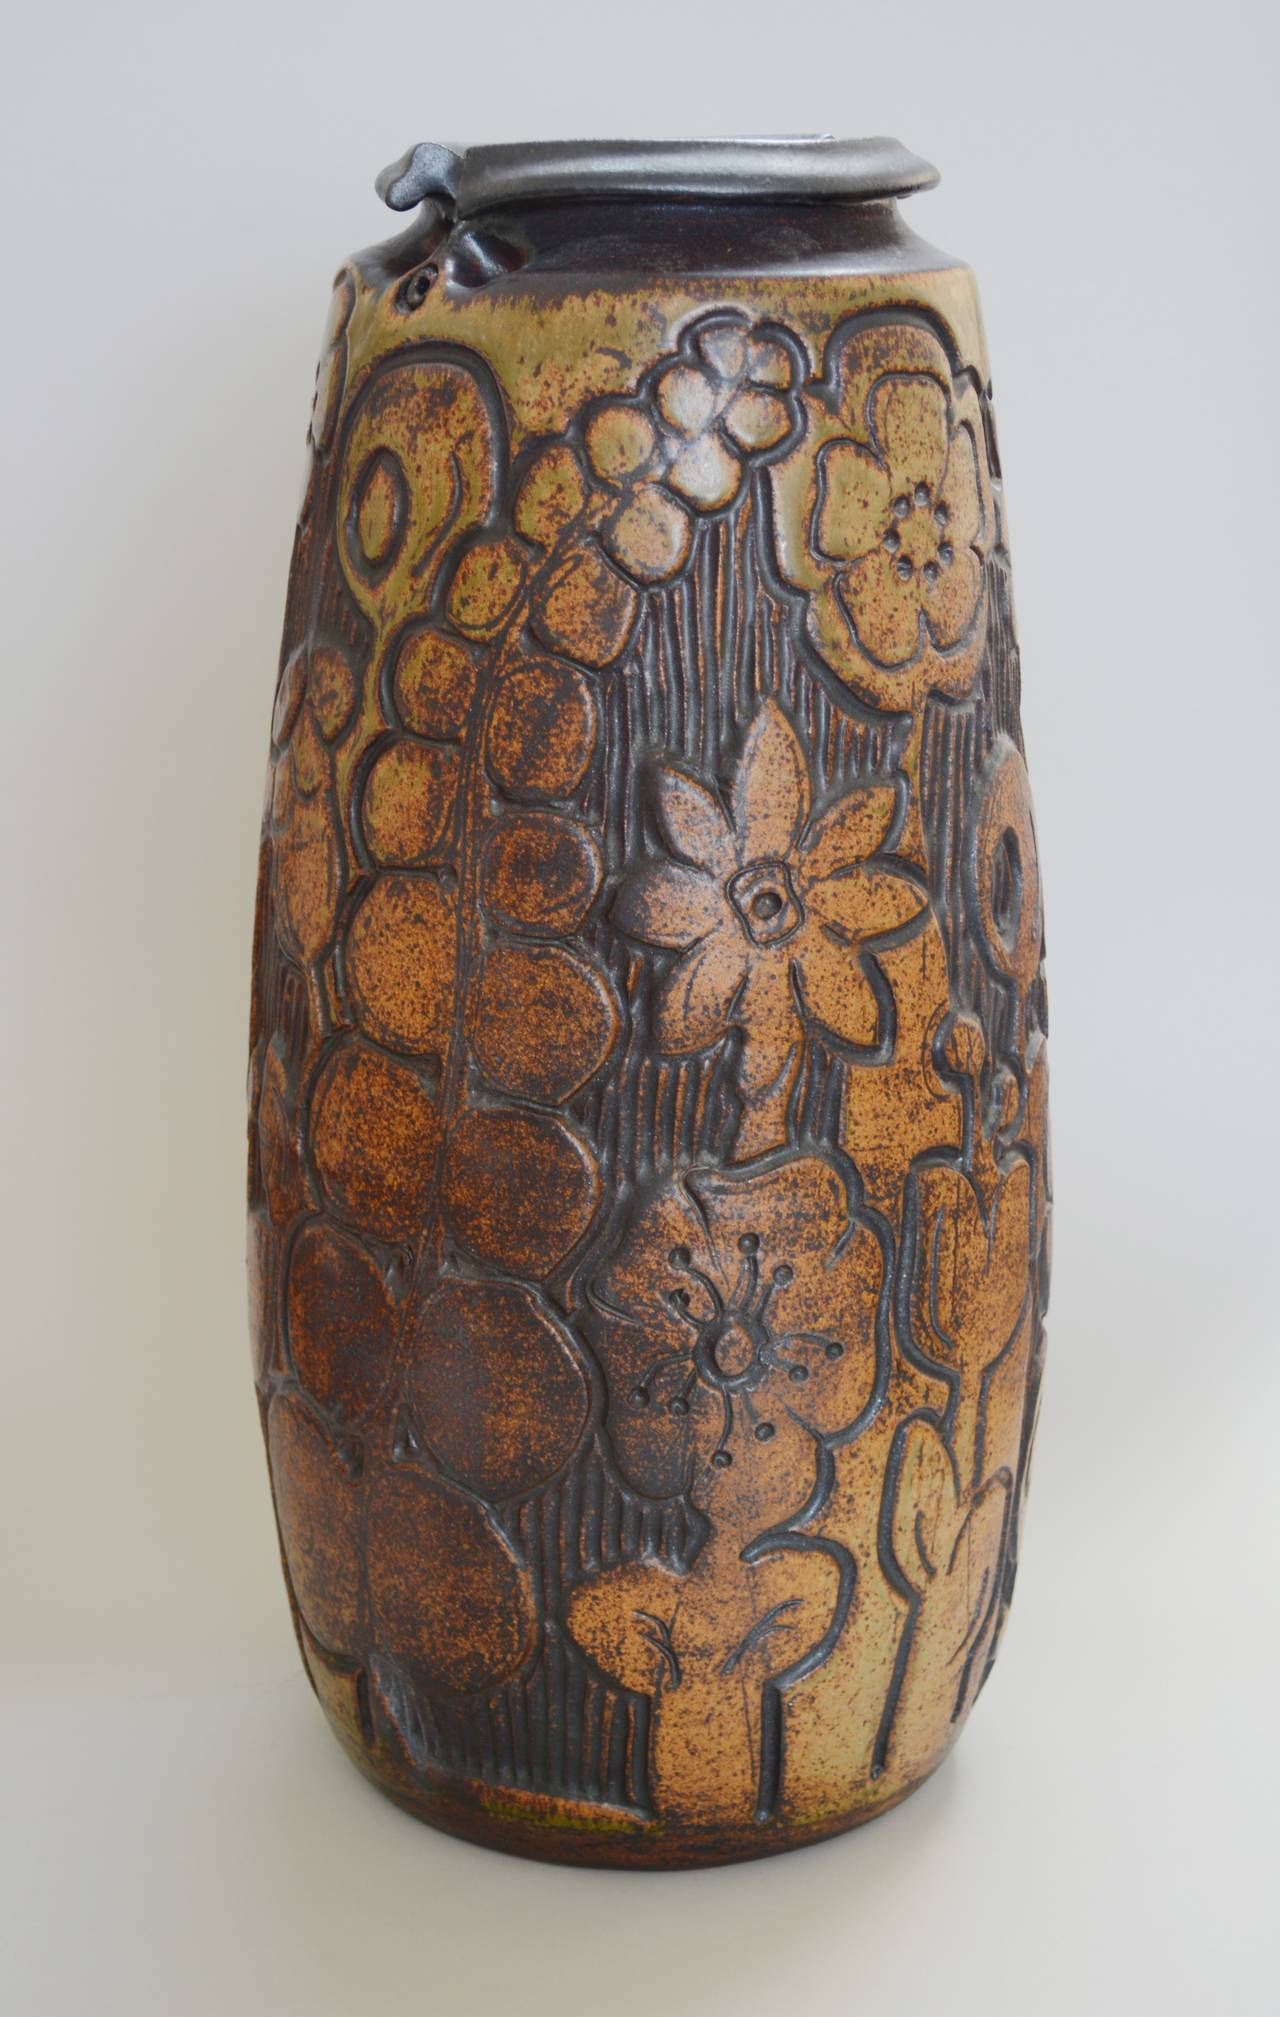 Monumental Andrew Bergloff Studio Pottery Floor Vase In Excellent Condition For Sale In San Mateo, CA